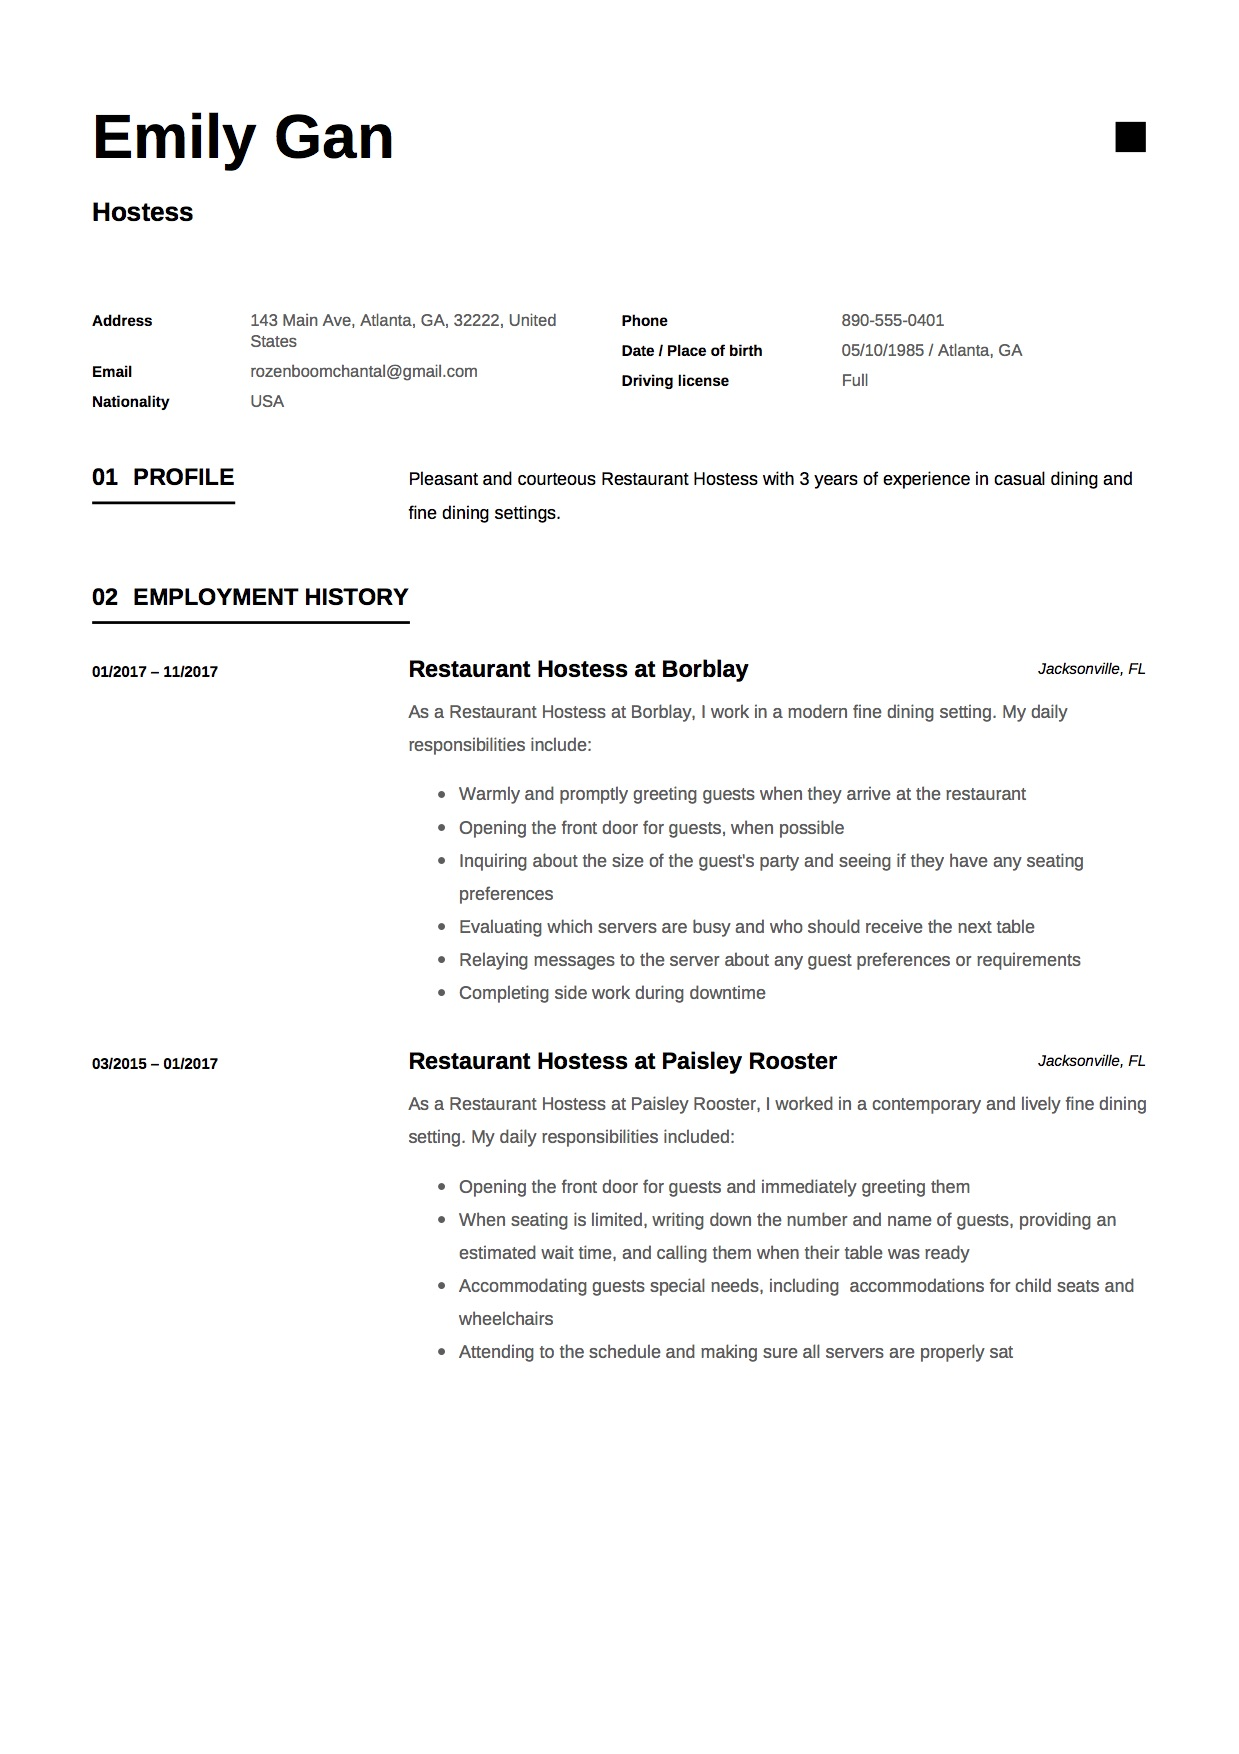 hostess resume guide examples free downloads duties of for emily gan template lvn Resume Duties Of A Hostess For A Resume